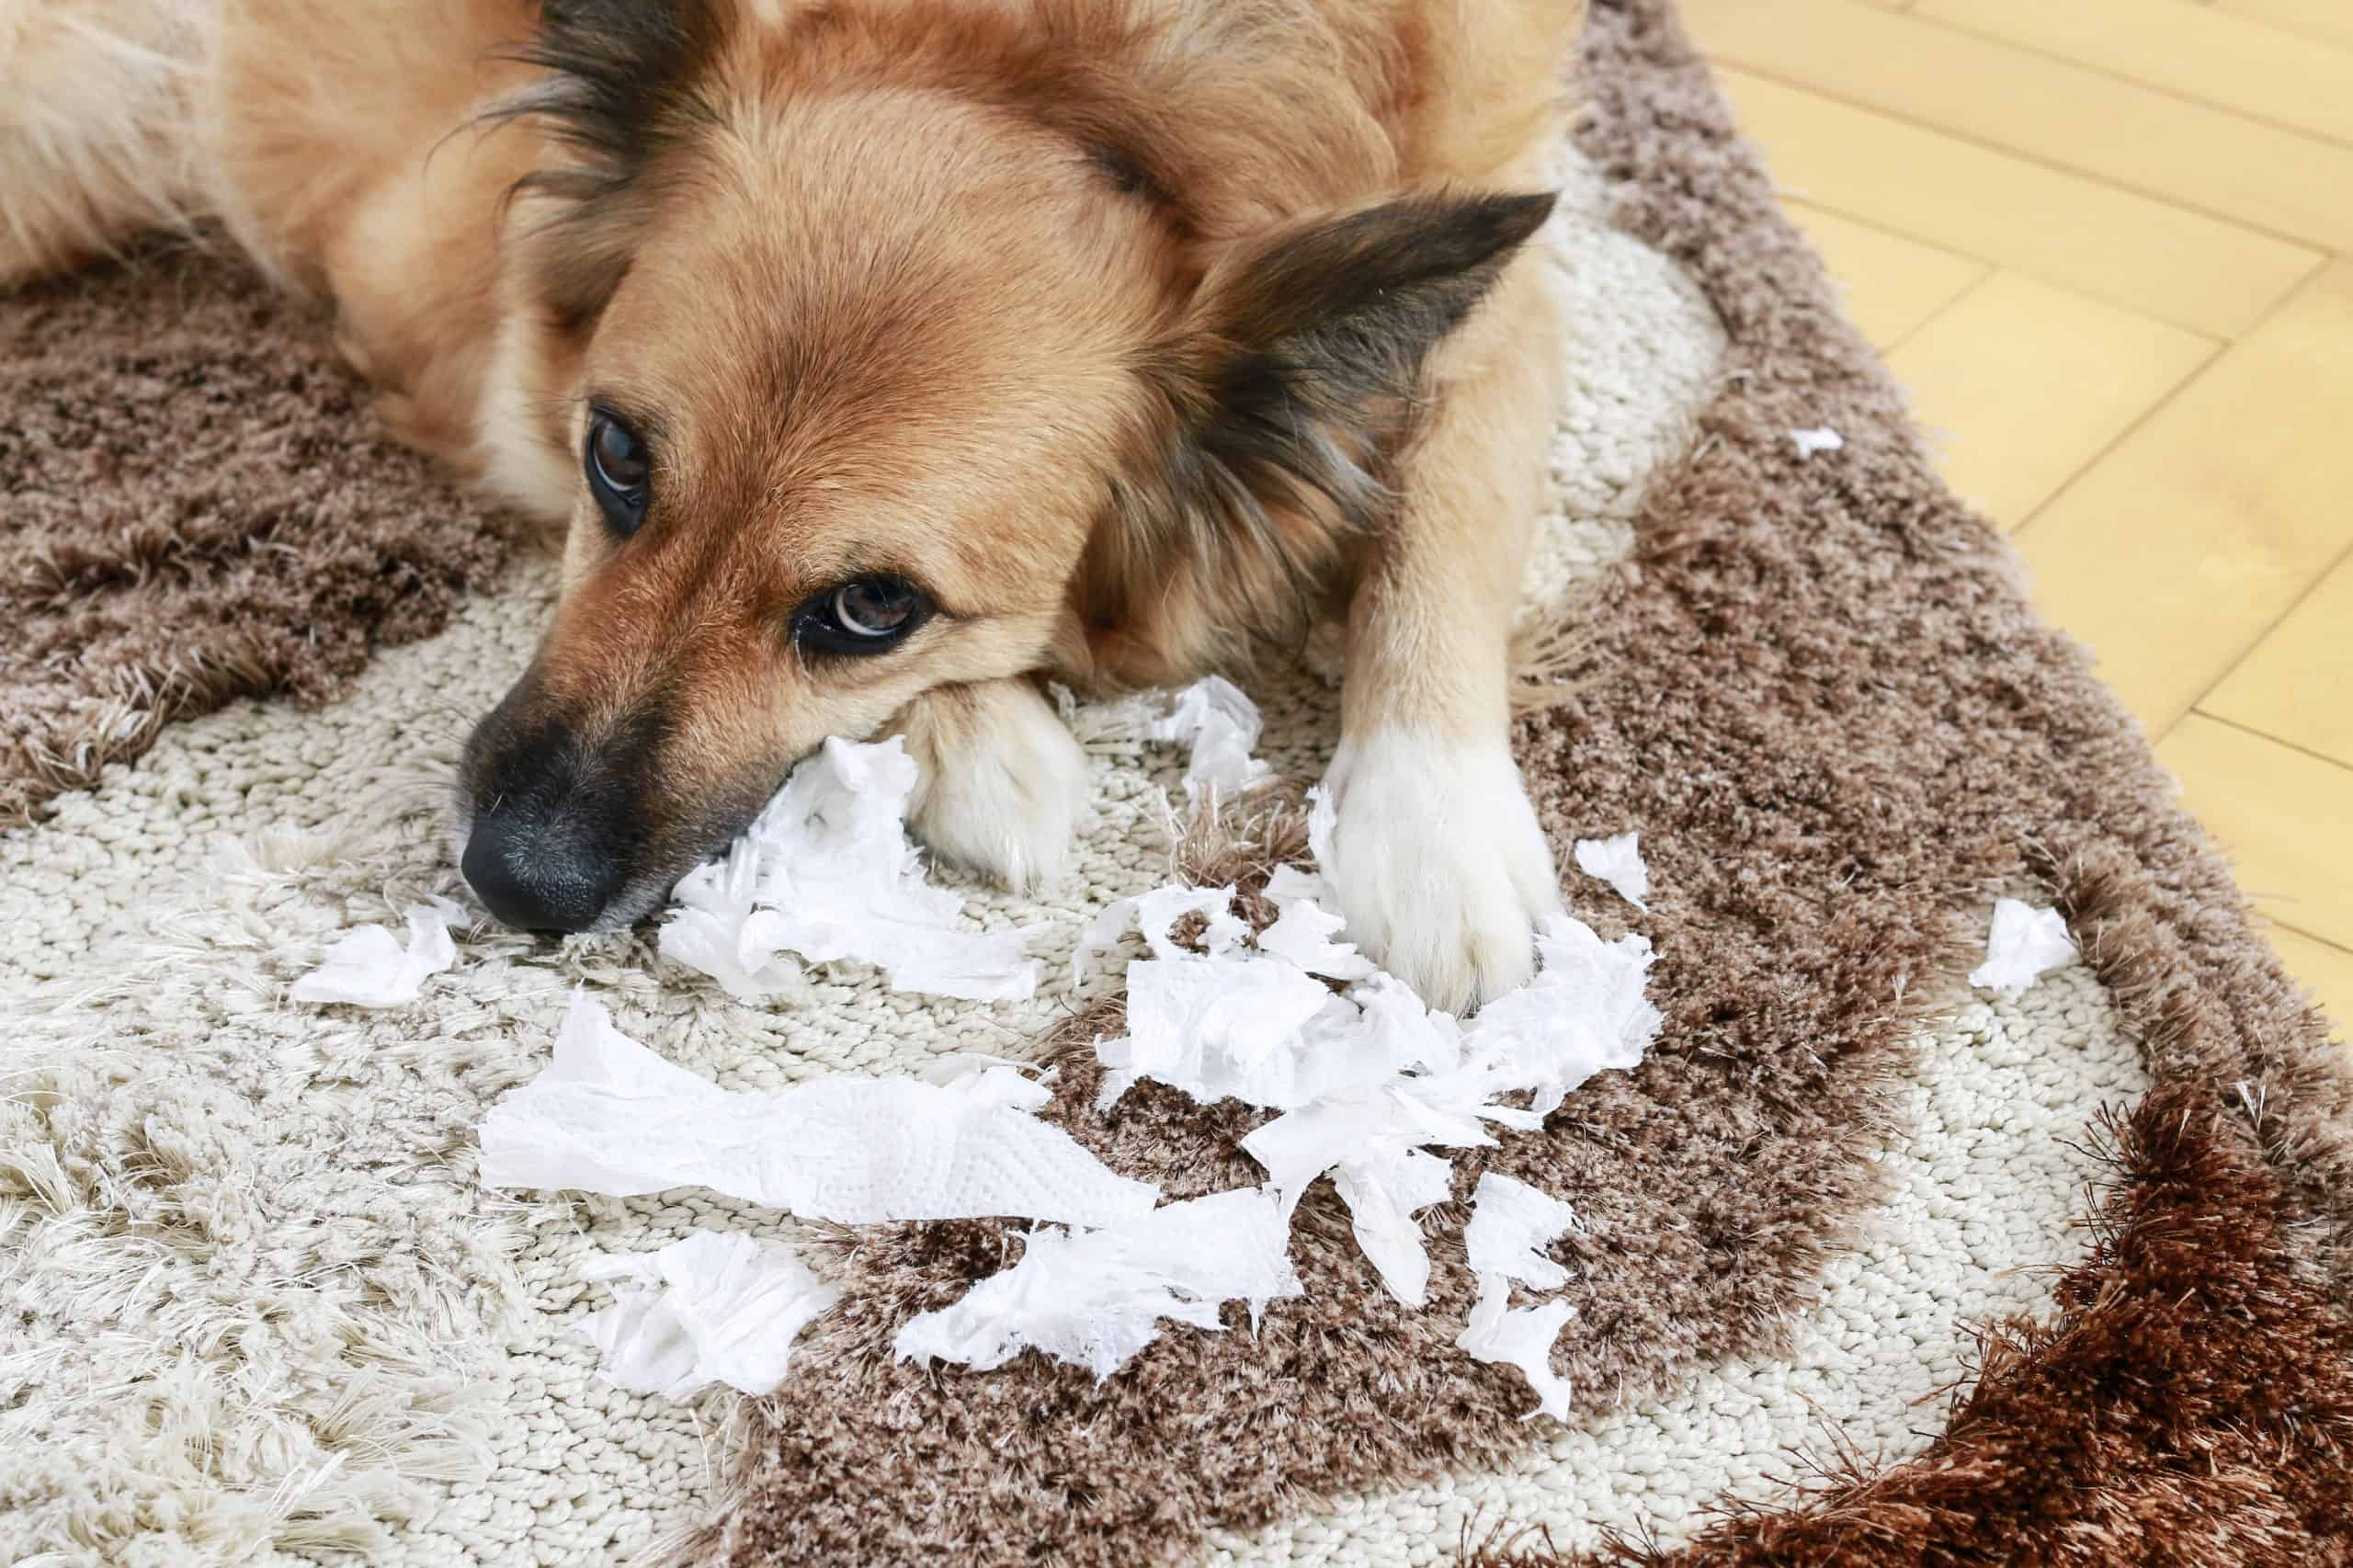 Dog lying on the carpet with torn papers.